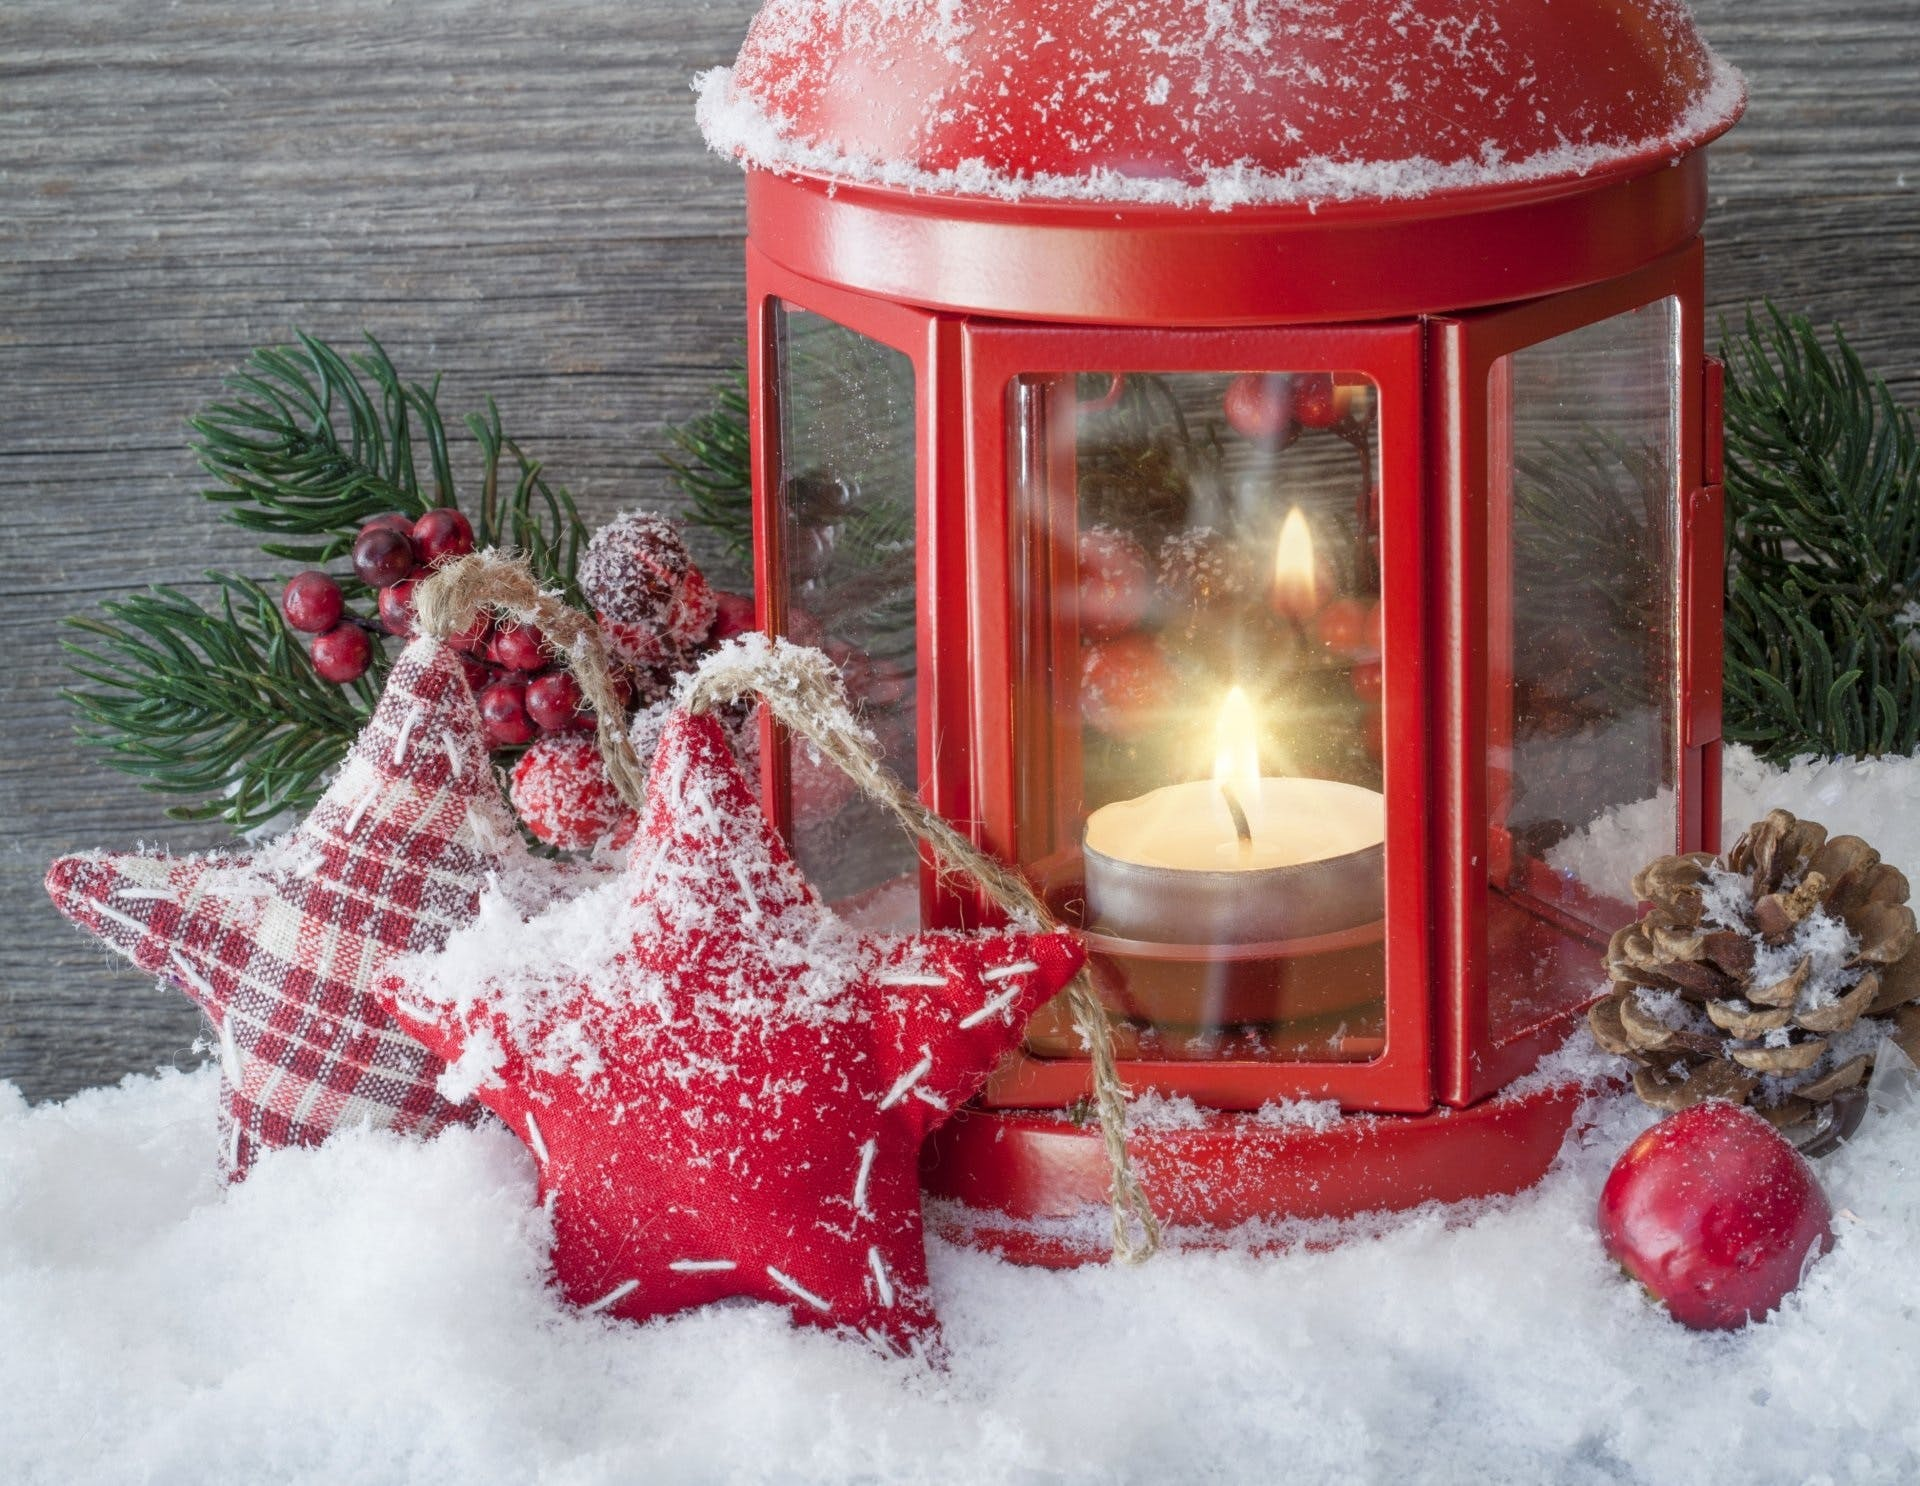 Lighted White Tealight Candle Inside Red Metal Lantern